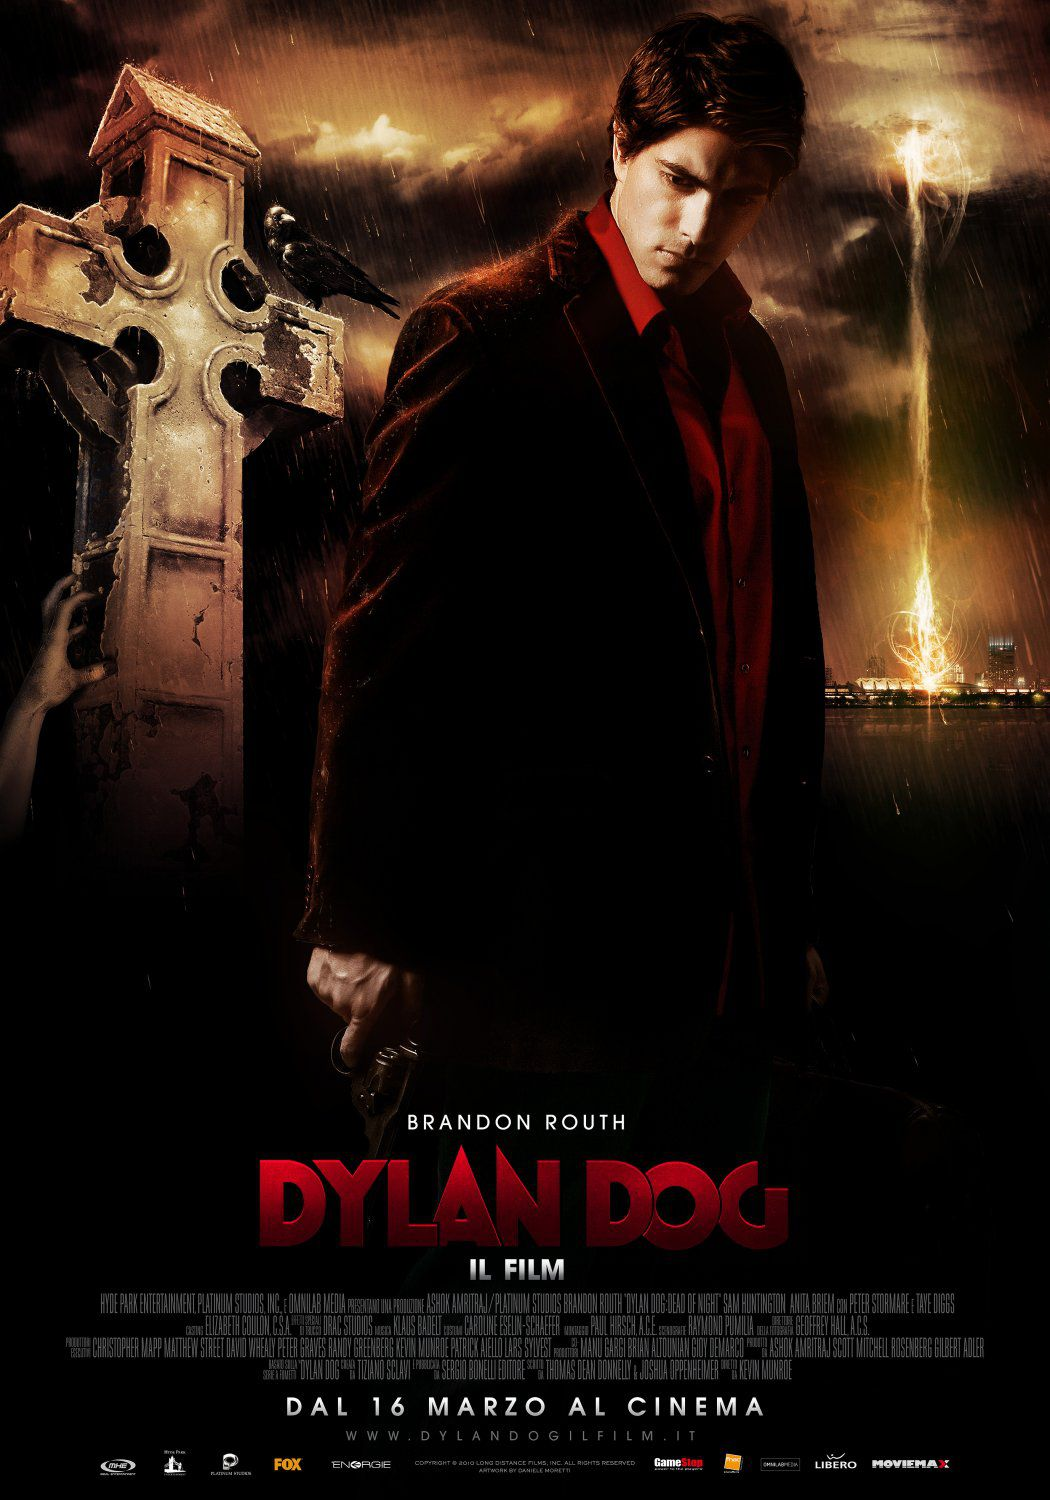 Dylan Dog Dead of Night - live action film poster - Brandon Routh